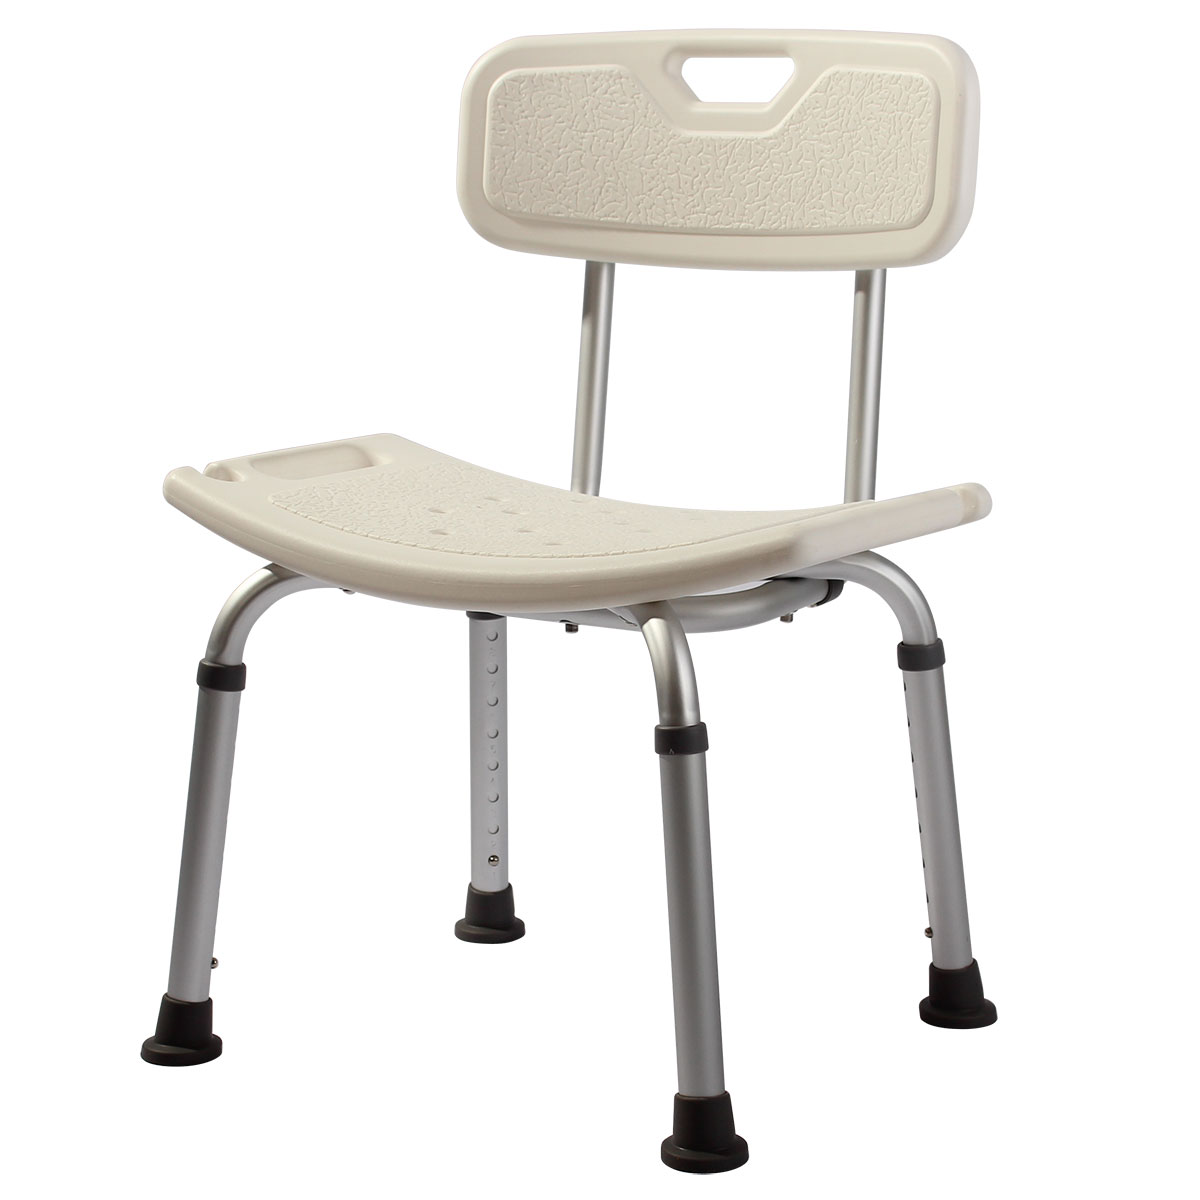 bath chairs for elderly folding chairs washing toilet toilet lady liadrin aluminum shower chair shower stool chair pregnant women the bath stool for the elderly slip